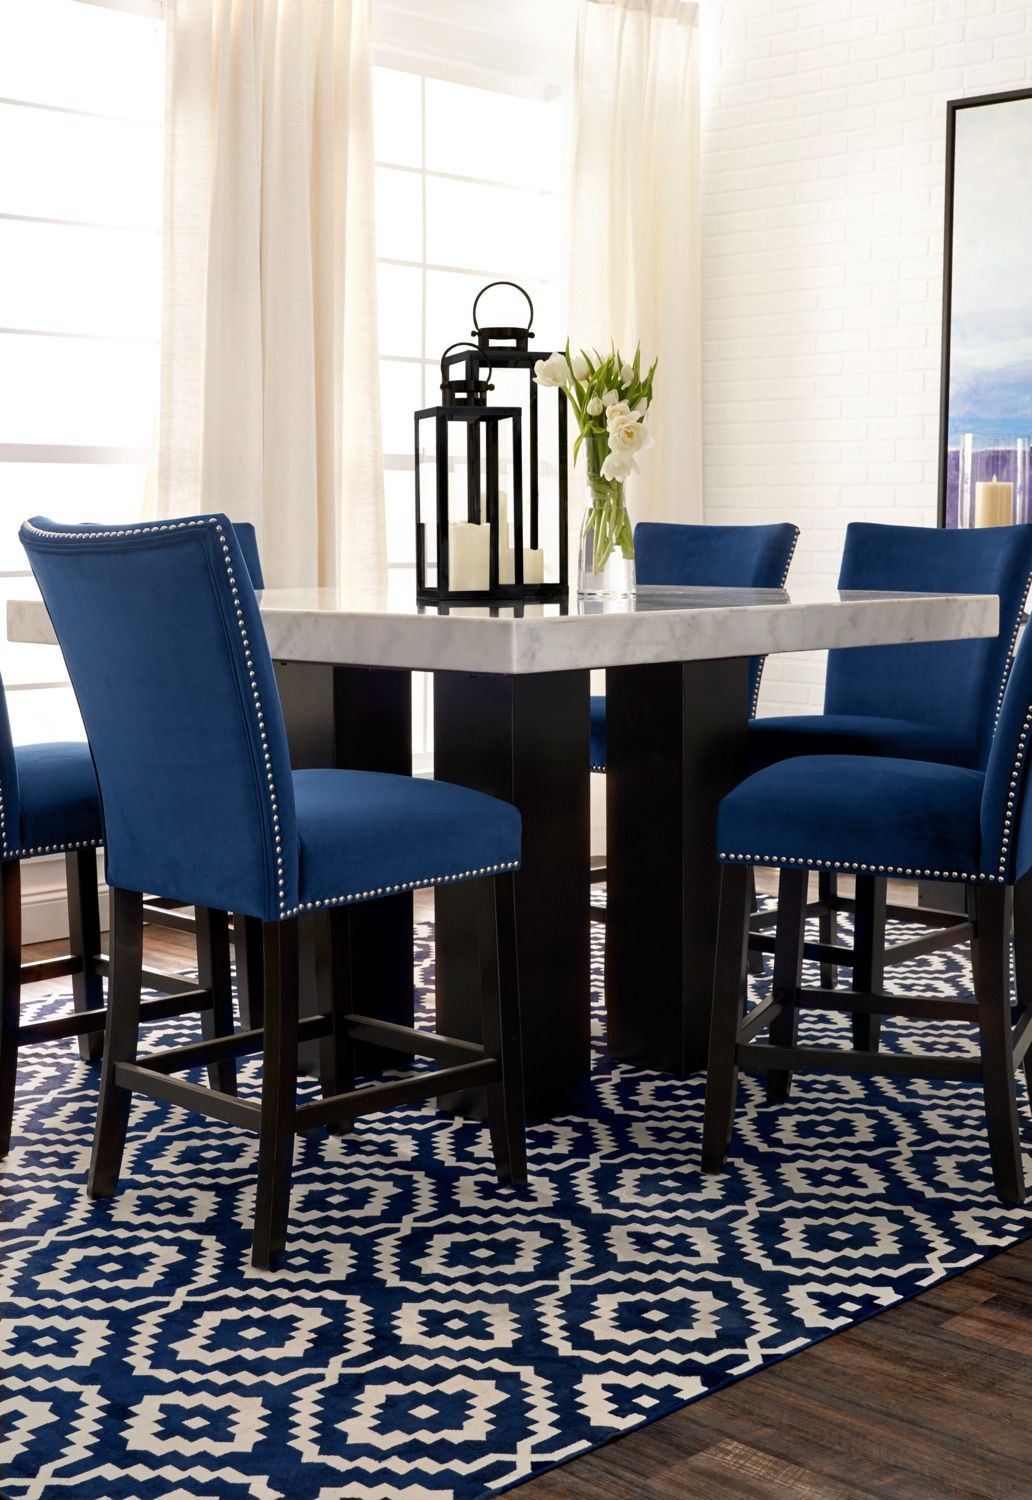 Artemis Counter Height Dining Table Marble Value City Furniture And Mattresses Interior Design Dining Room Dining Table Marble Value City Furniture